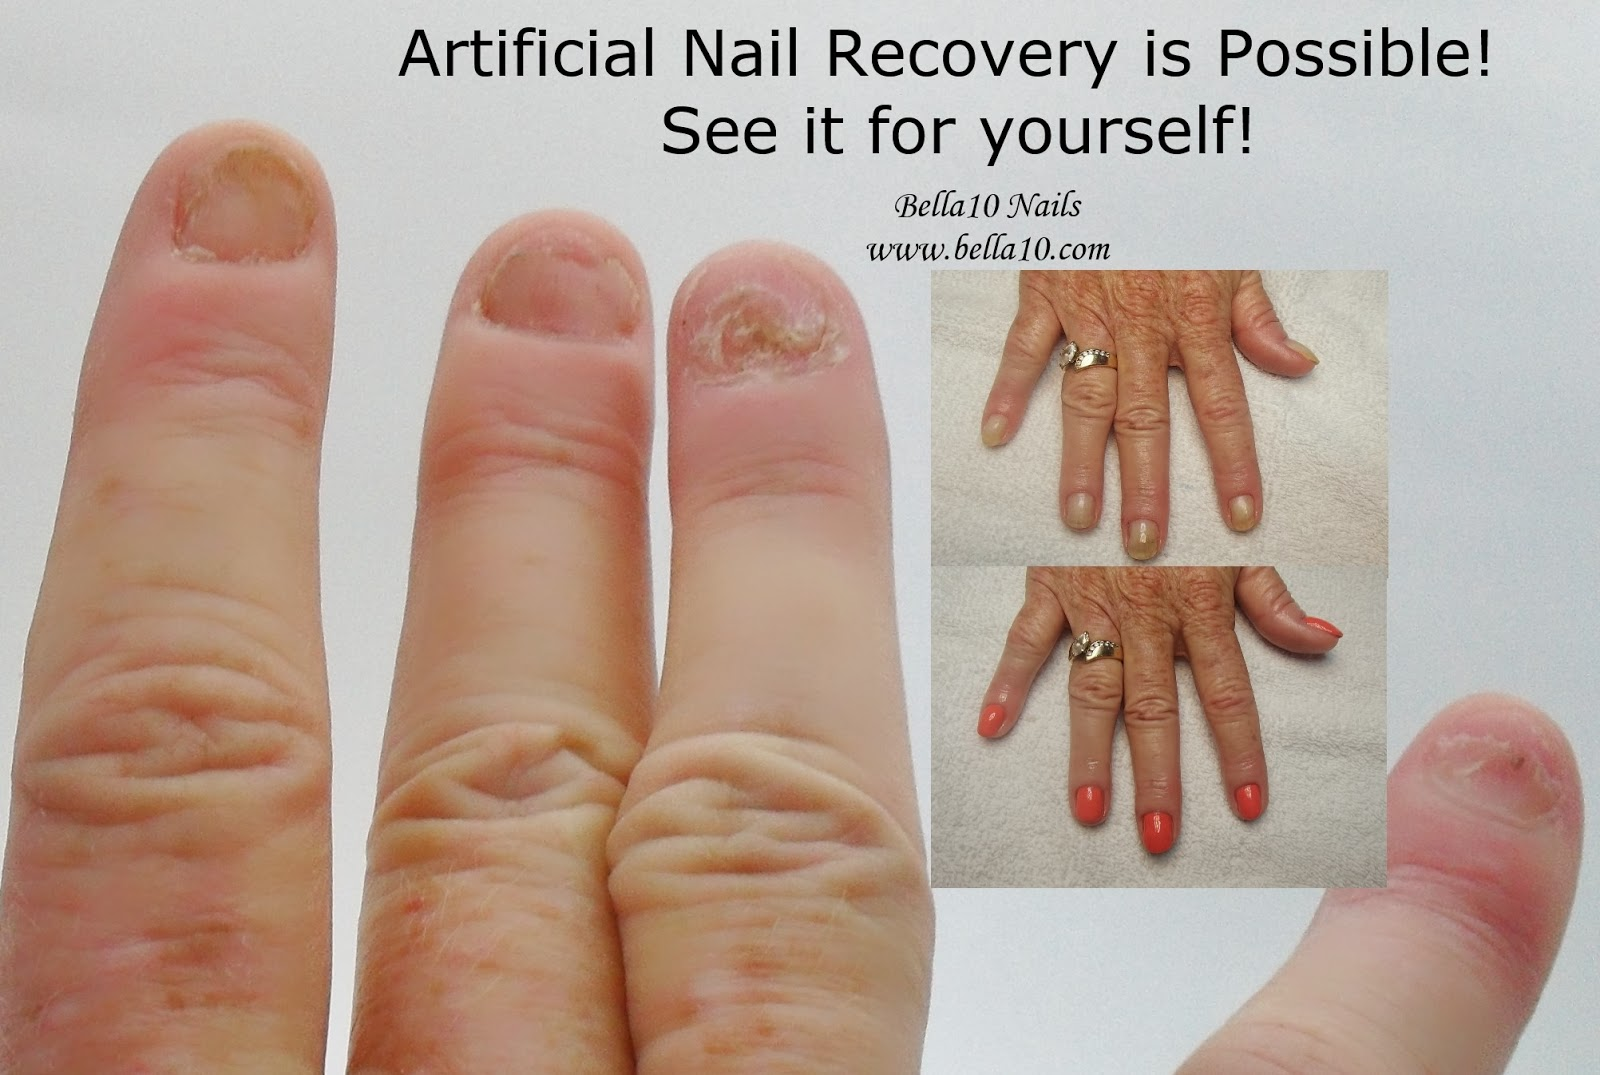 Bella10 Nails August 2012